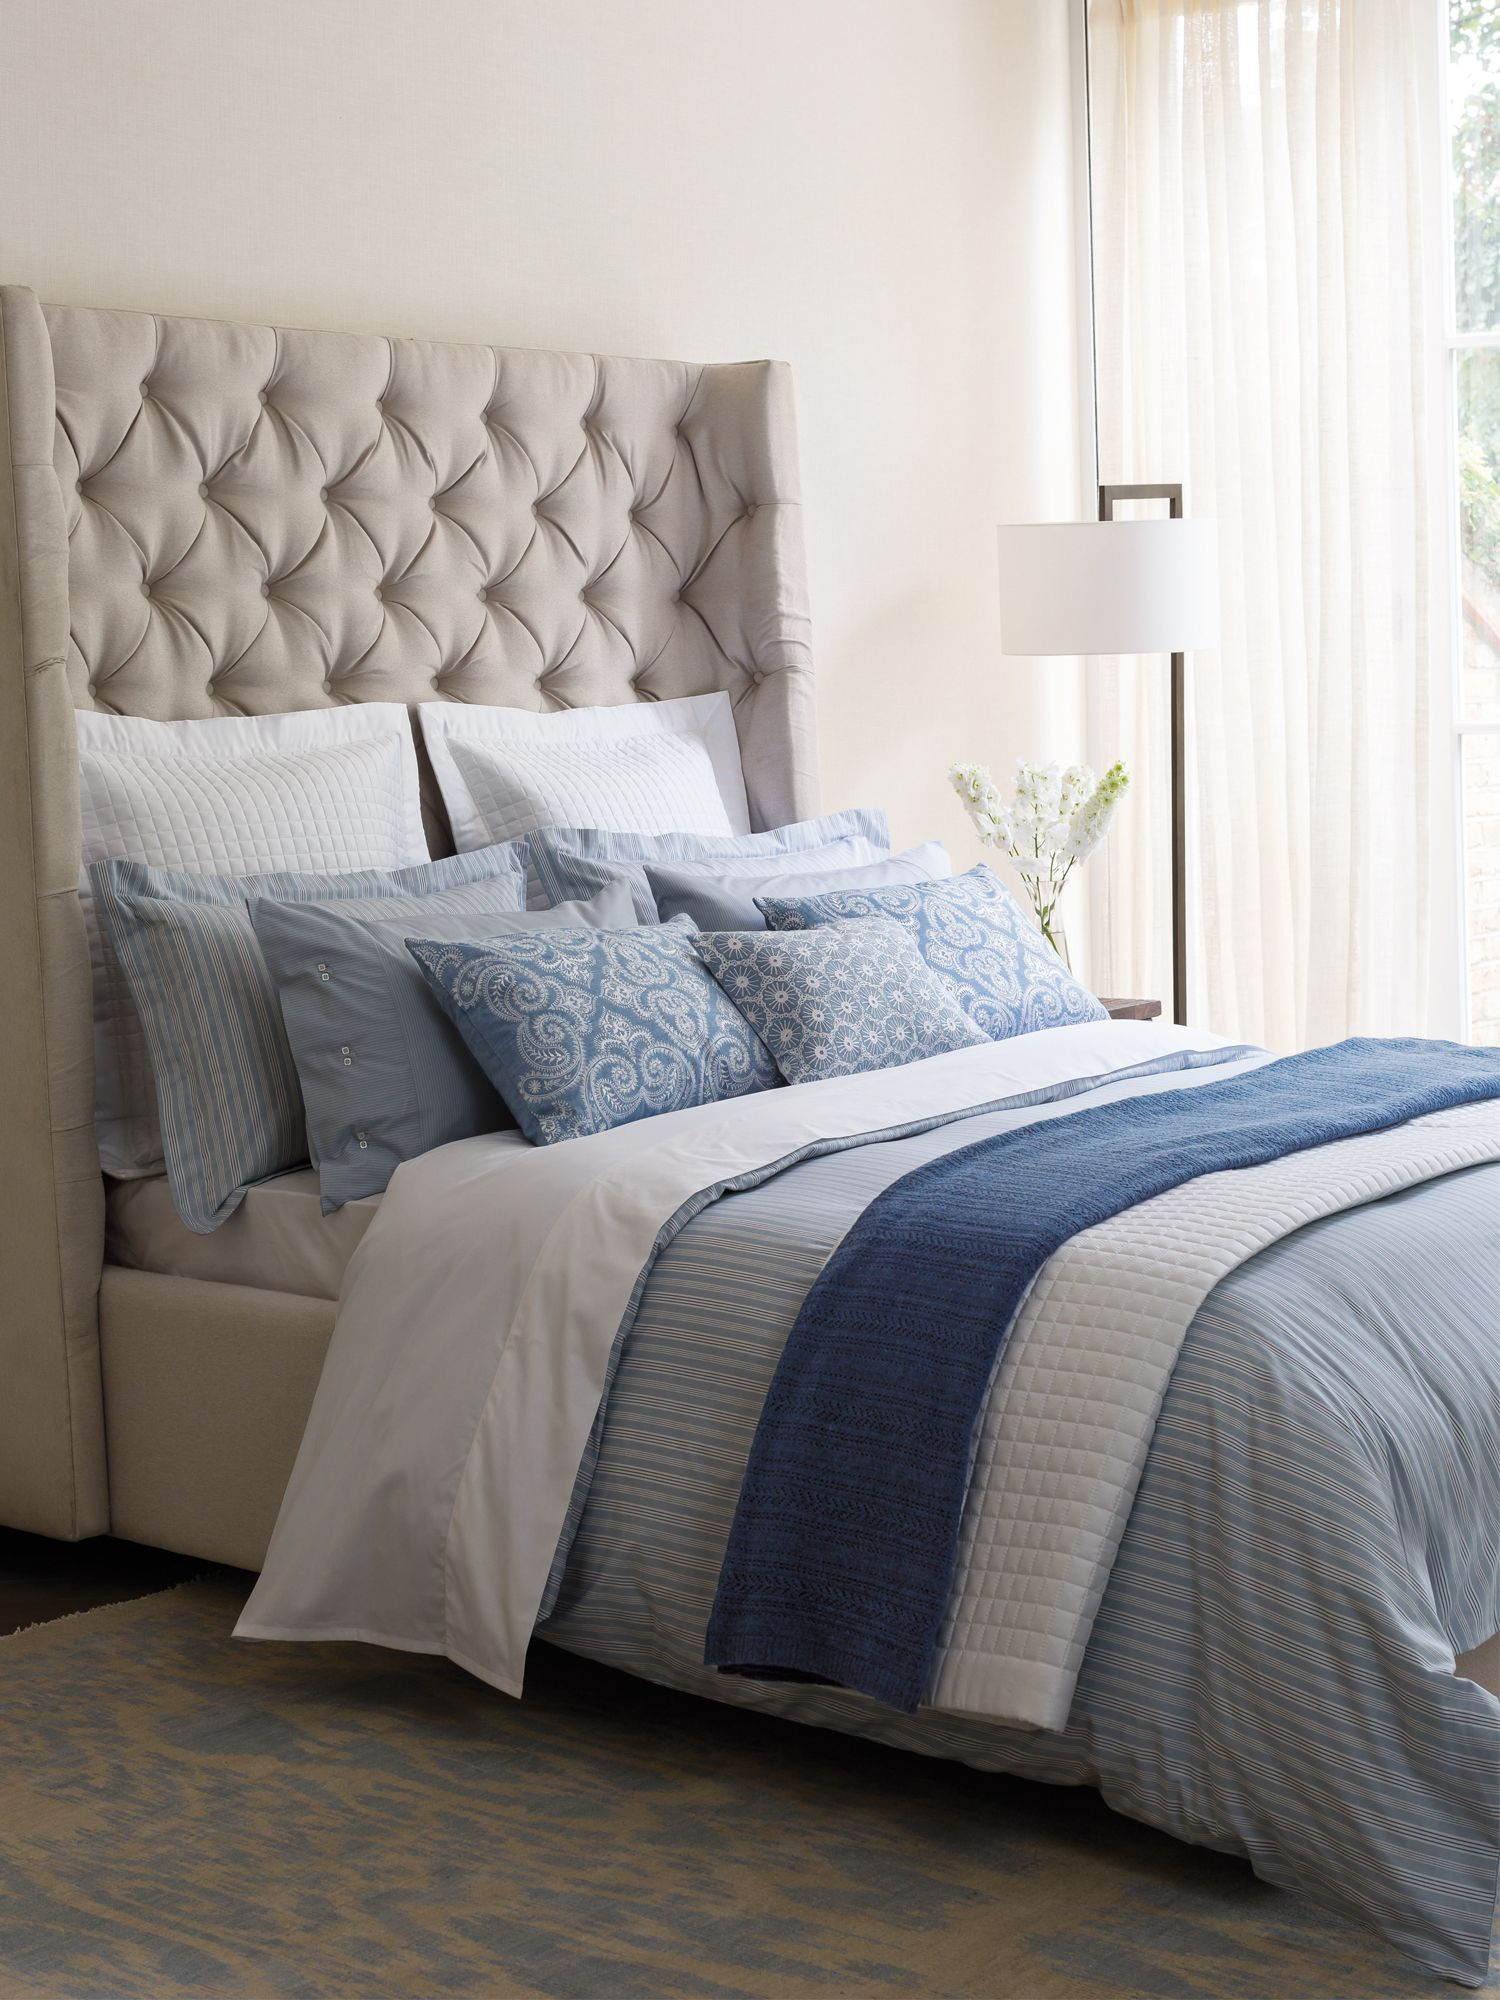 Fable Fable Darcy stripe superking duvet cover sky